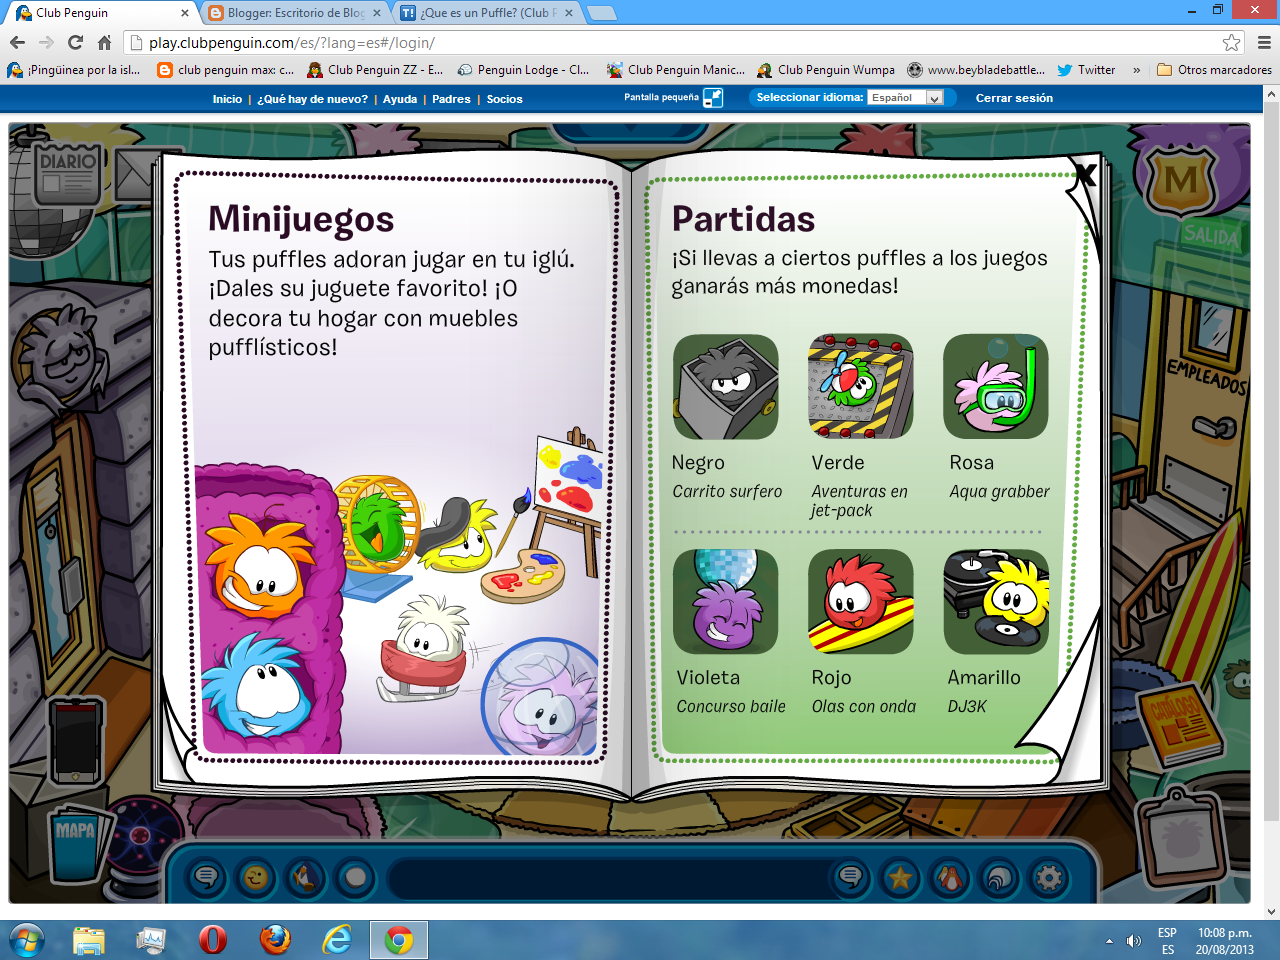 Club Penguin Max 2013 # Penguin Lodge Muebles